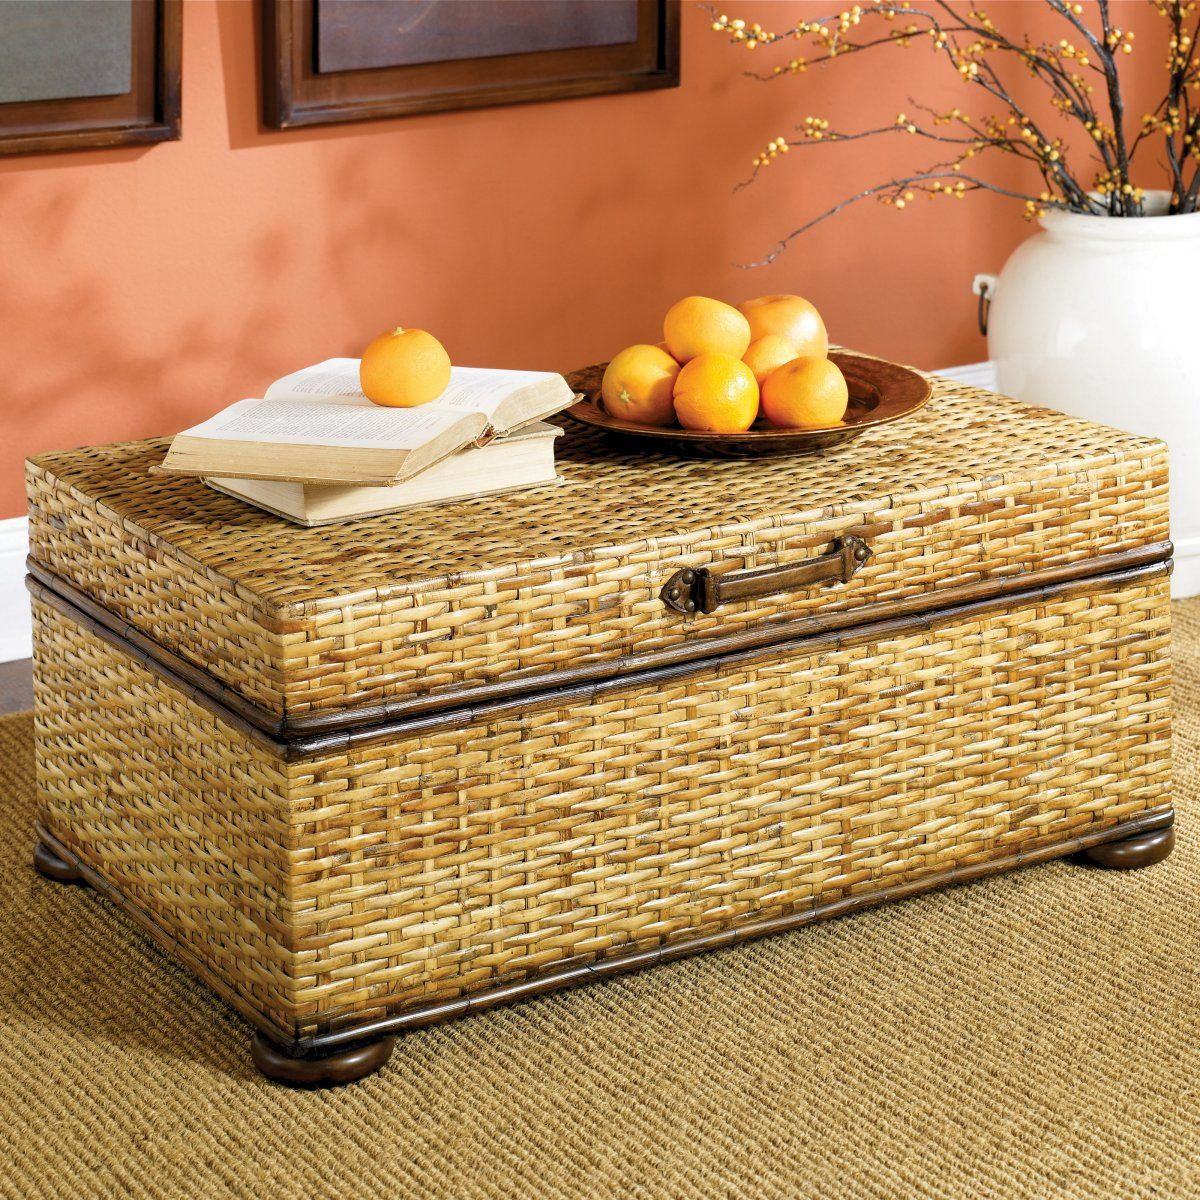 - Woven Rattan Trunk - This Looks Like The One Lazy Boy Had Rattan